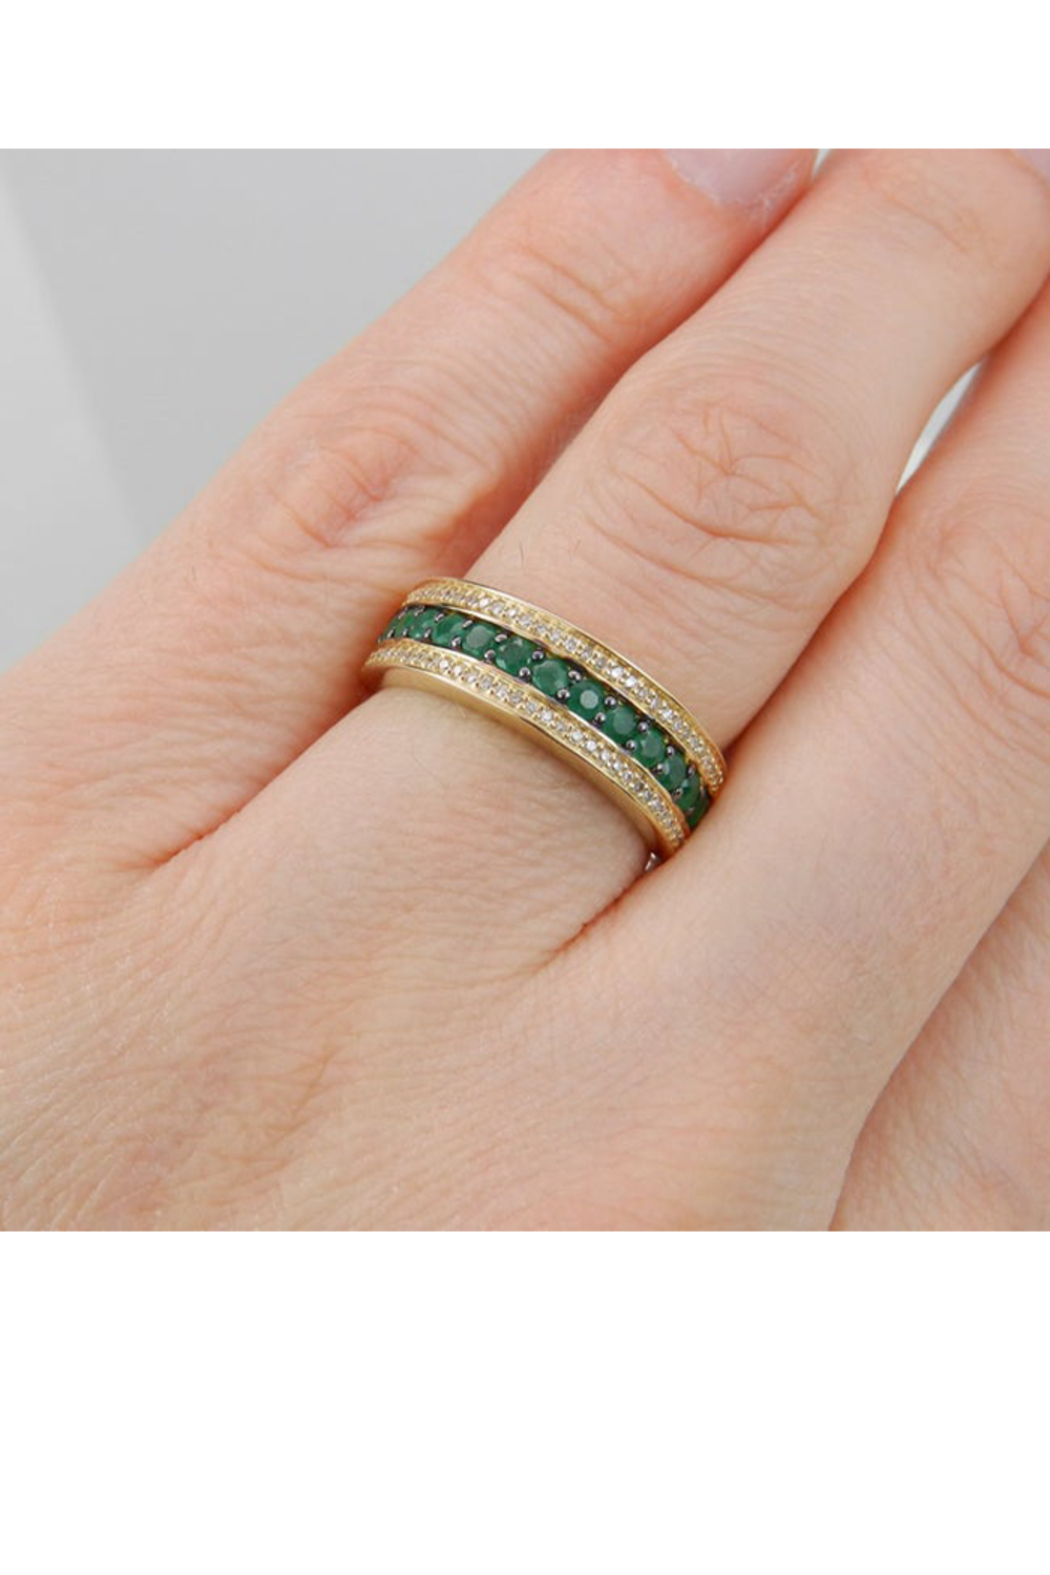 Margolin & Co Diamond and Emerald Ring, Emerald Anniversary Band, Emerald Wedding Ring, 14K Yellow Gold Stackable Ring, Size 6, May Birthstone FREE Sizing - Back Cropped Image